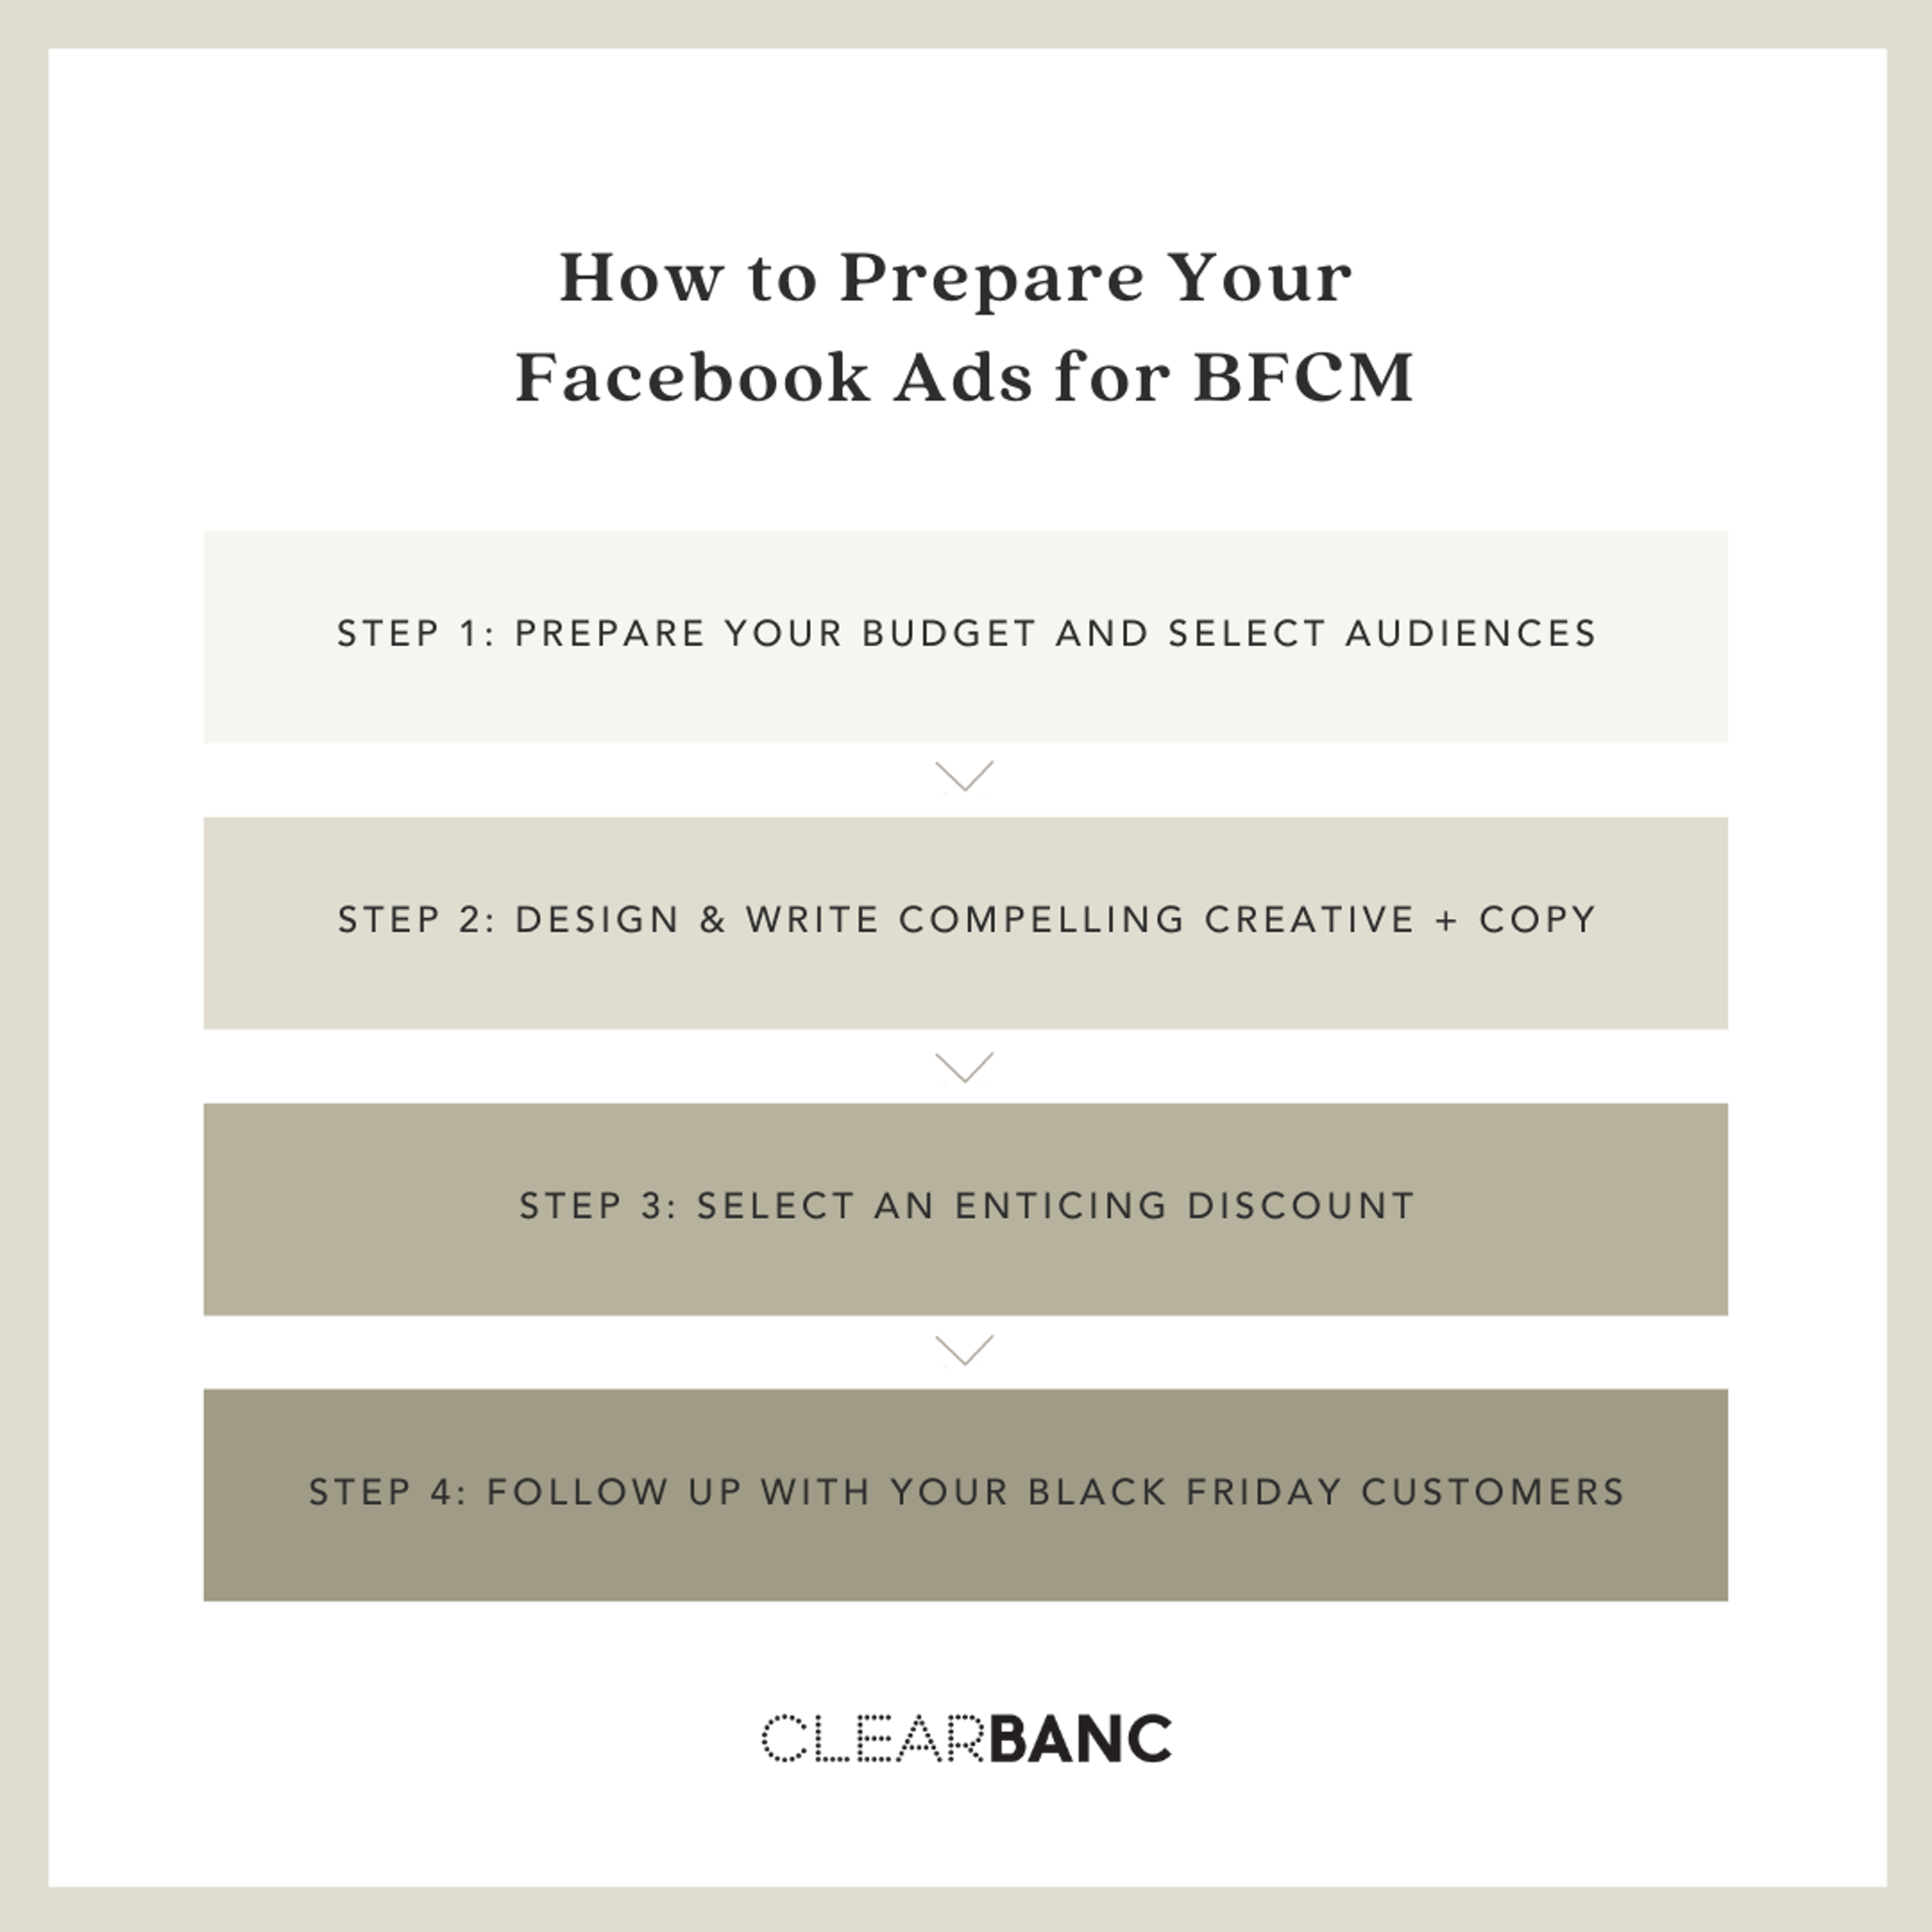 How to prepare your facebook ads for BFCM